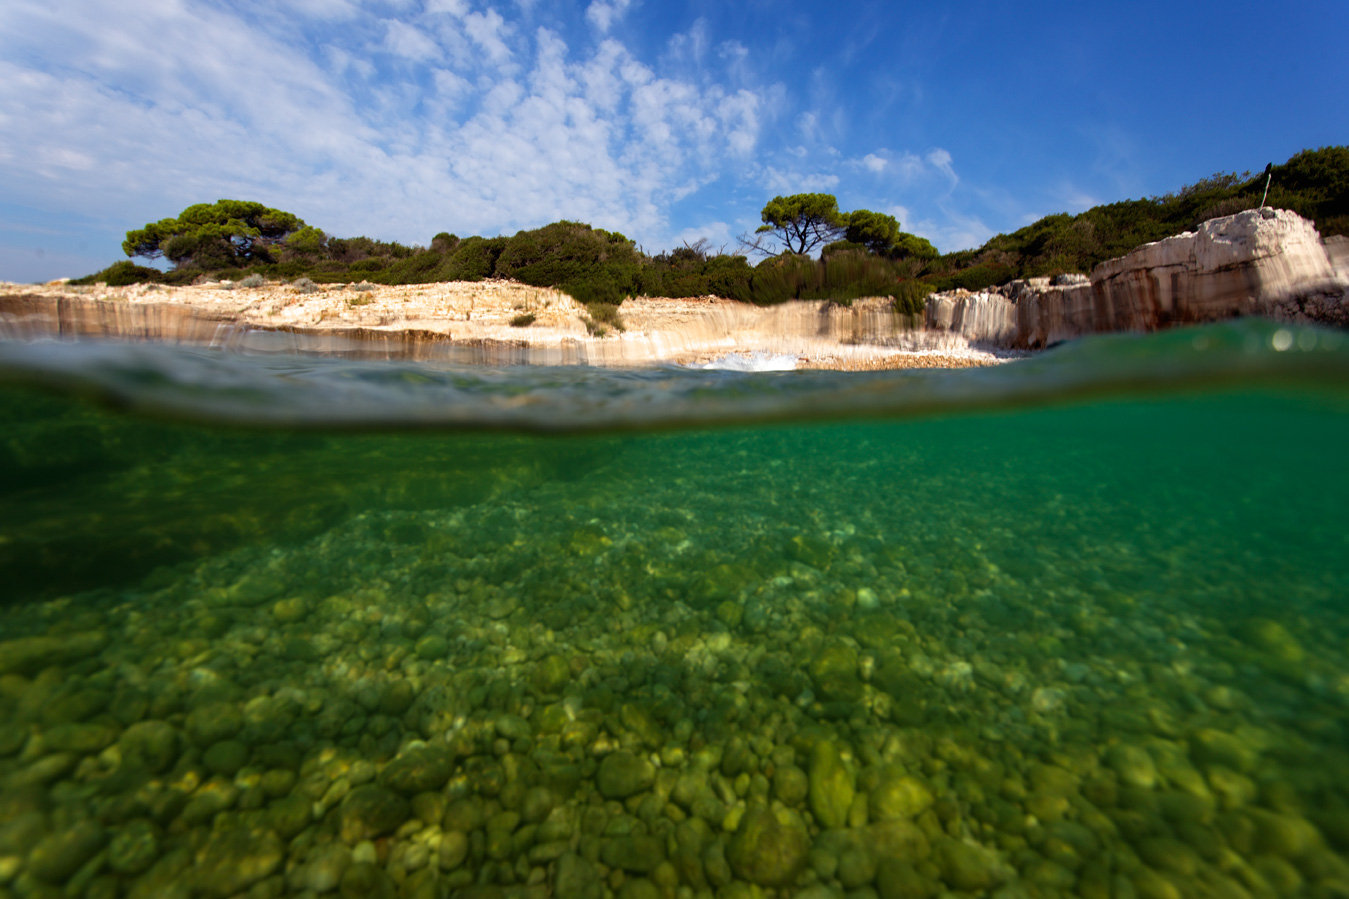 croatia, sea, brijuni, istra, croatia, national park, coast, adriatic, underwater,island